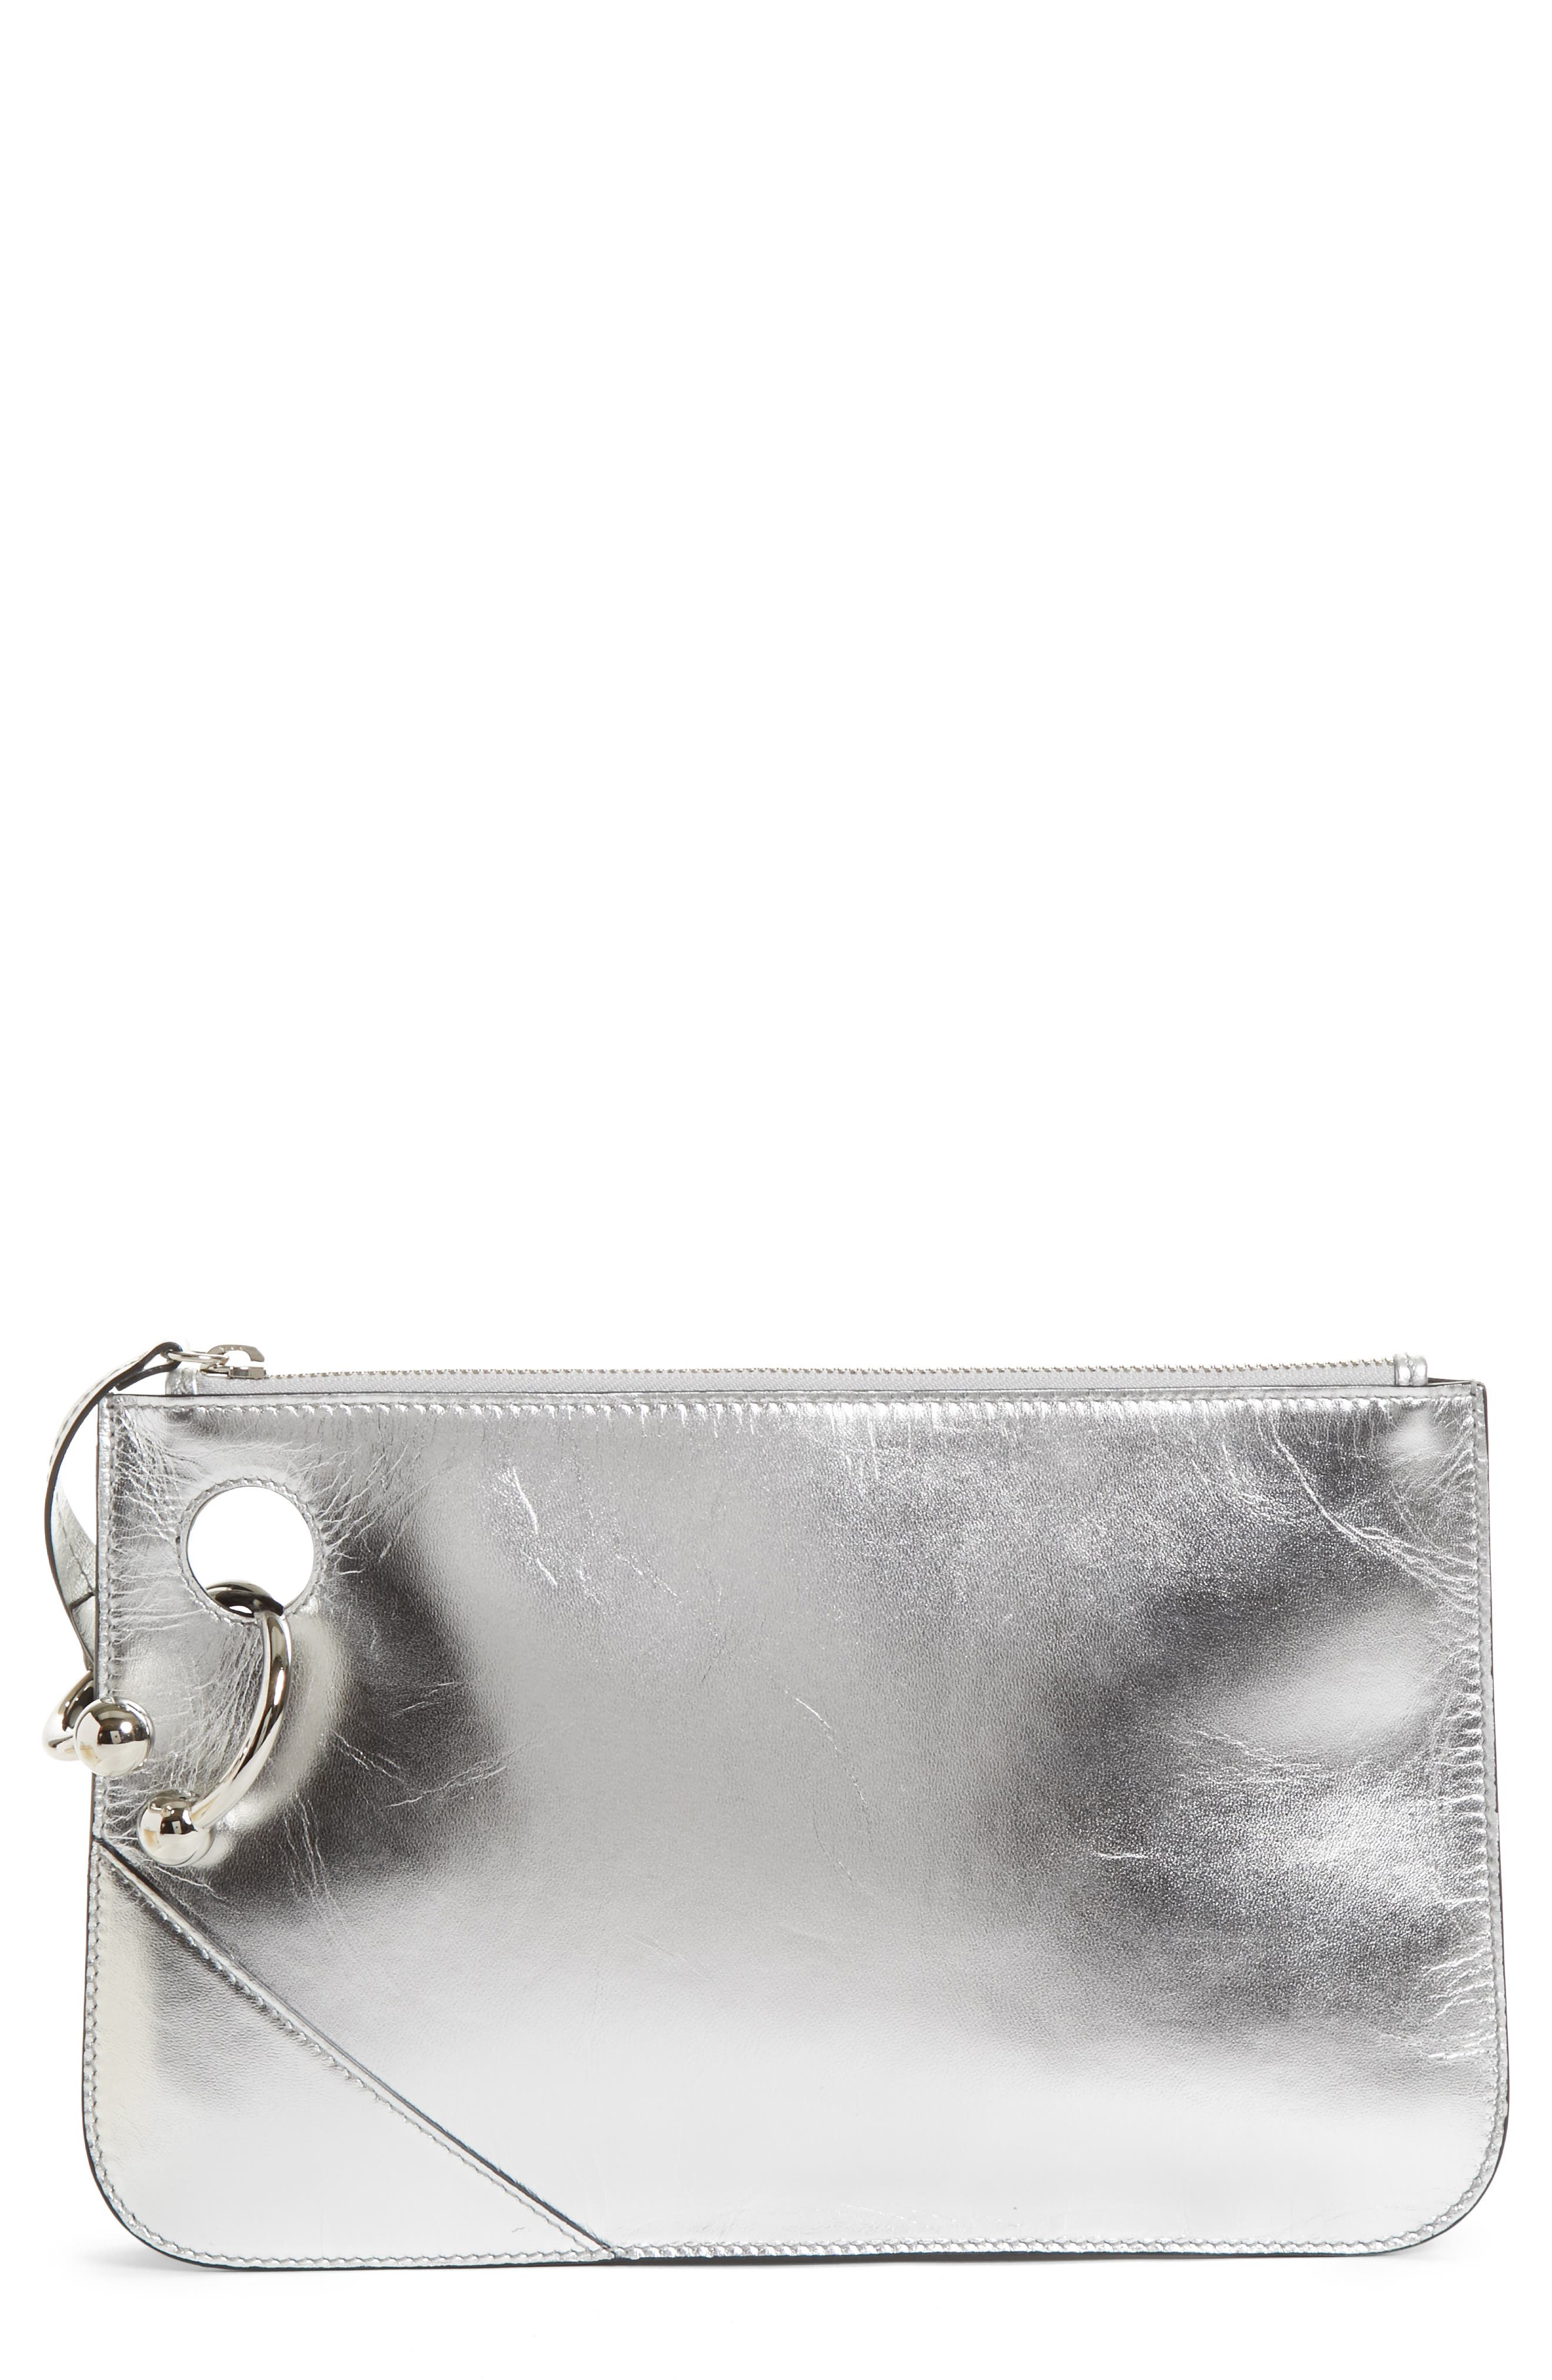 J.W.ANDERSON Pierce Metallic Leather Clutch,                             Main thumbnail 1, color,                             040